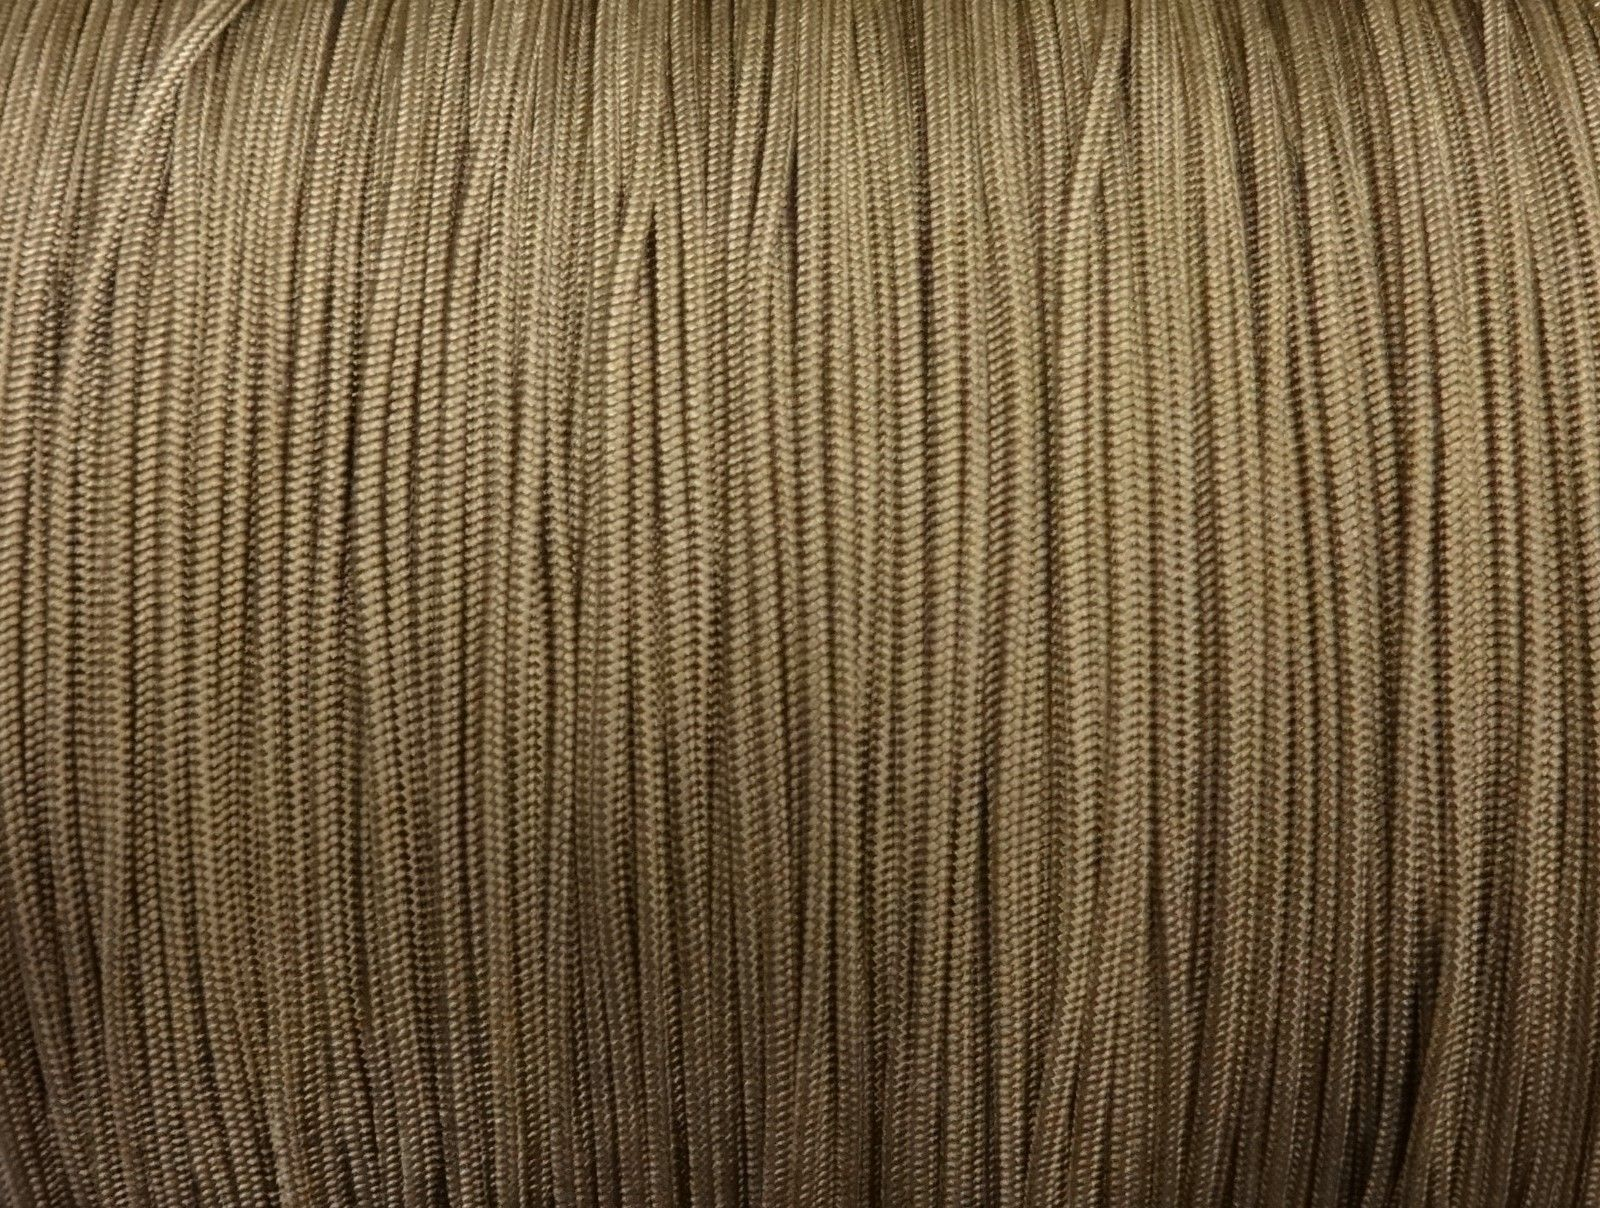 25 YARDS: 1.8mm MILK CHOCOLATE LIFT CORD for ROMAN/PLEATED shades & blinds